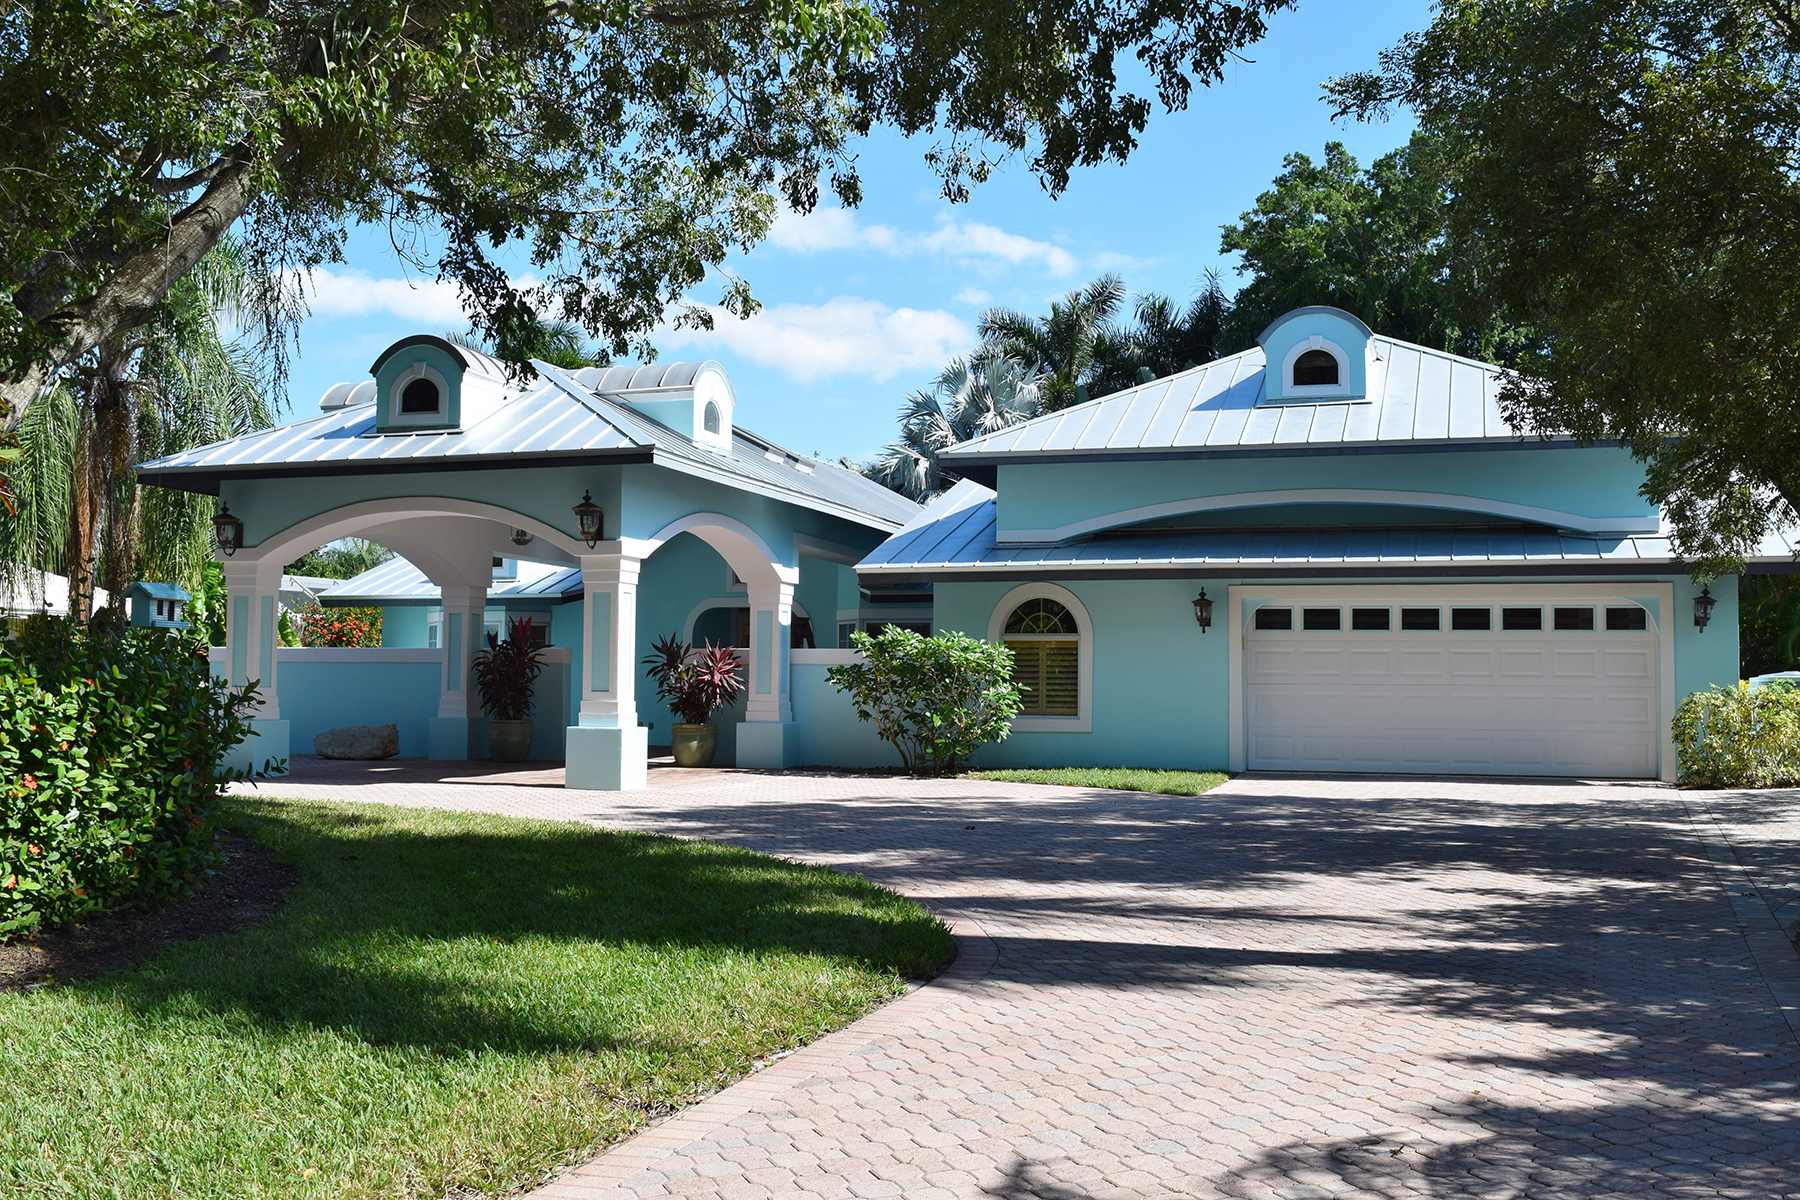 Single Family Home for Sale at PARK SHORE 700 Old Trail Dr, Naples, Florida 34103 United States